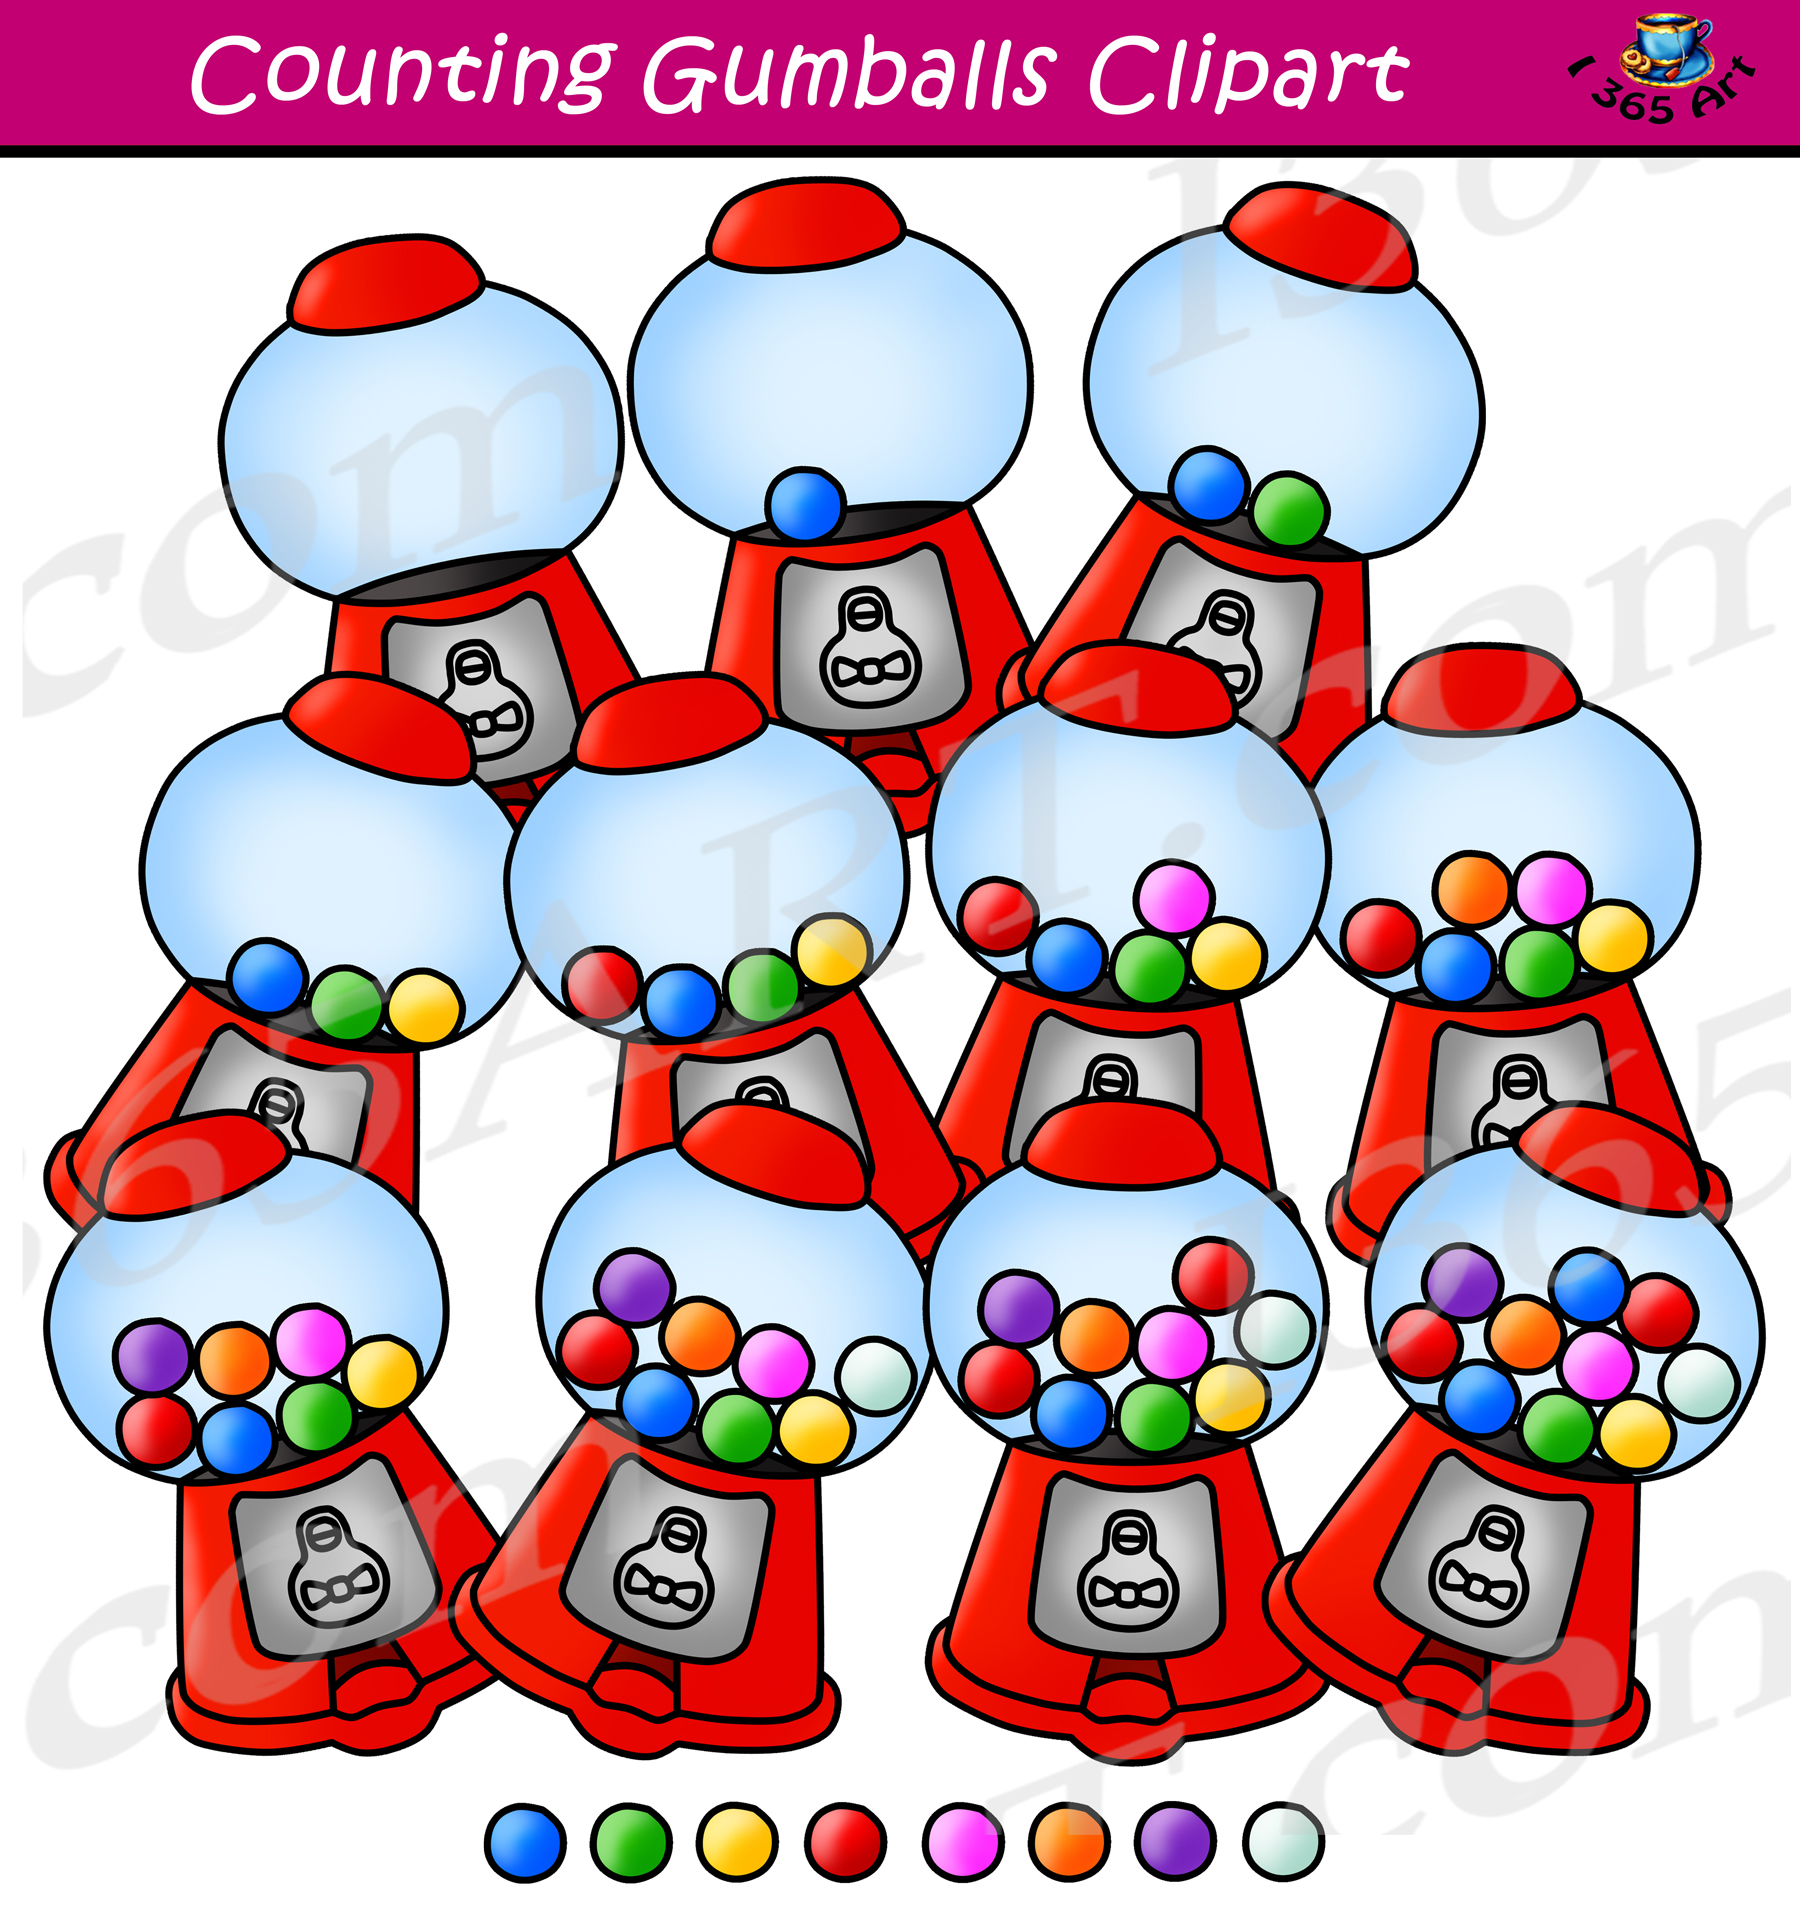 Counting Gumballs Clipart.